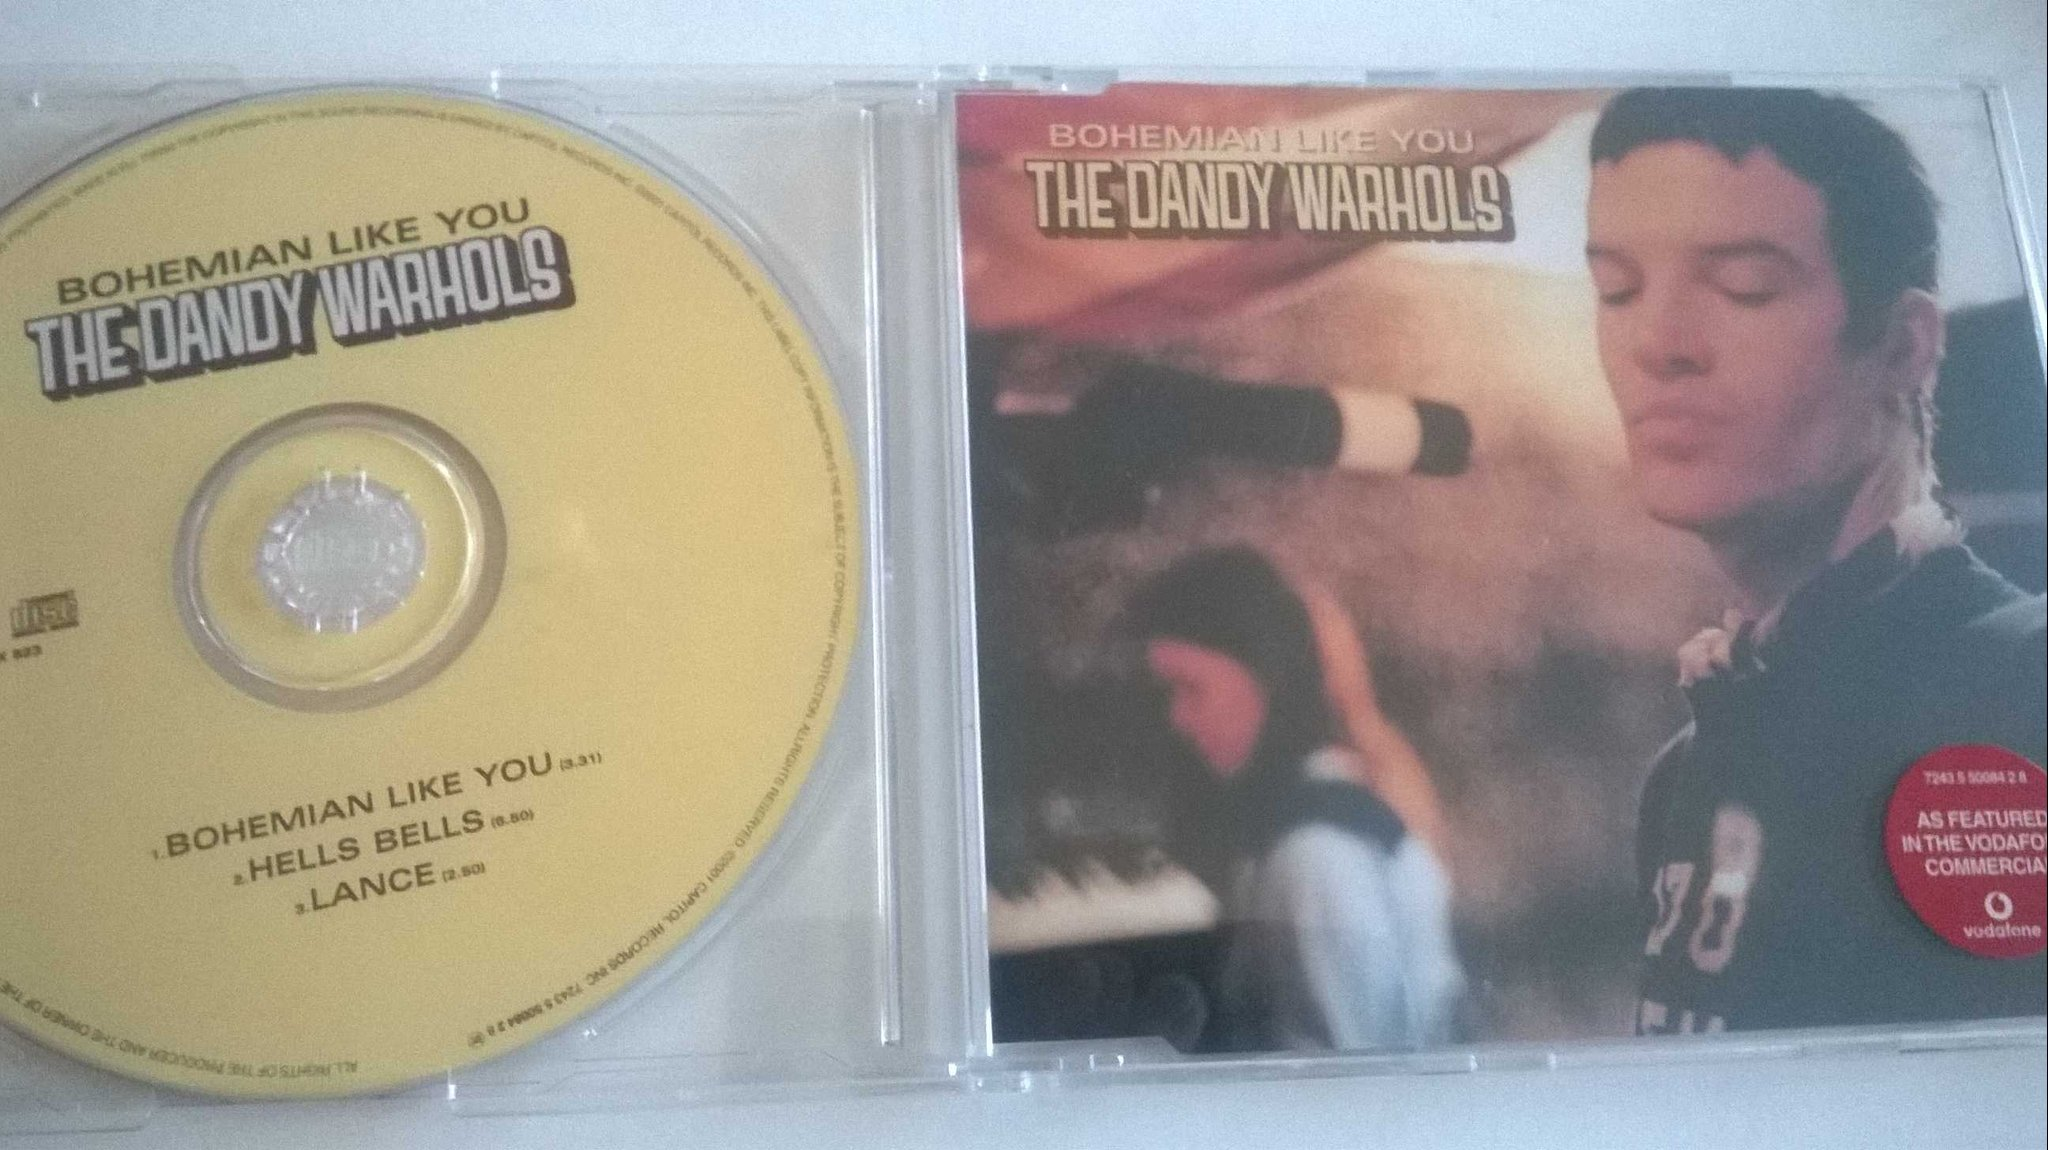 The Dandy Warhols - Bohemian Like You, CD, Single